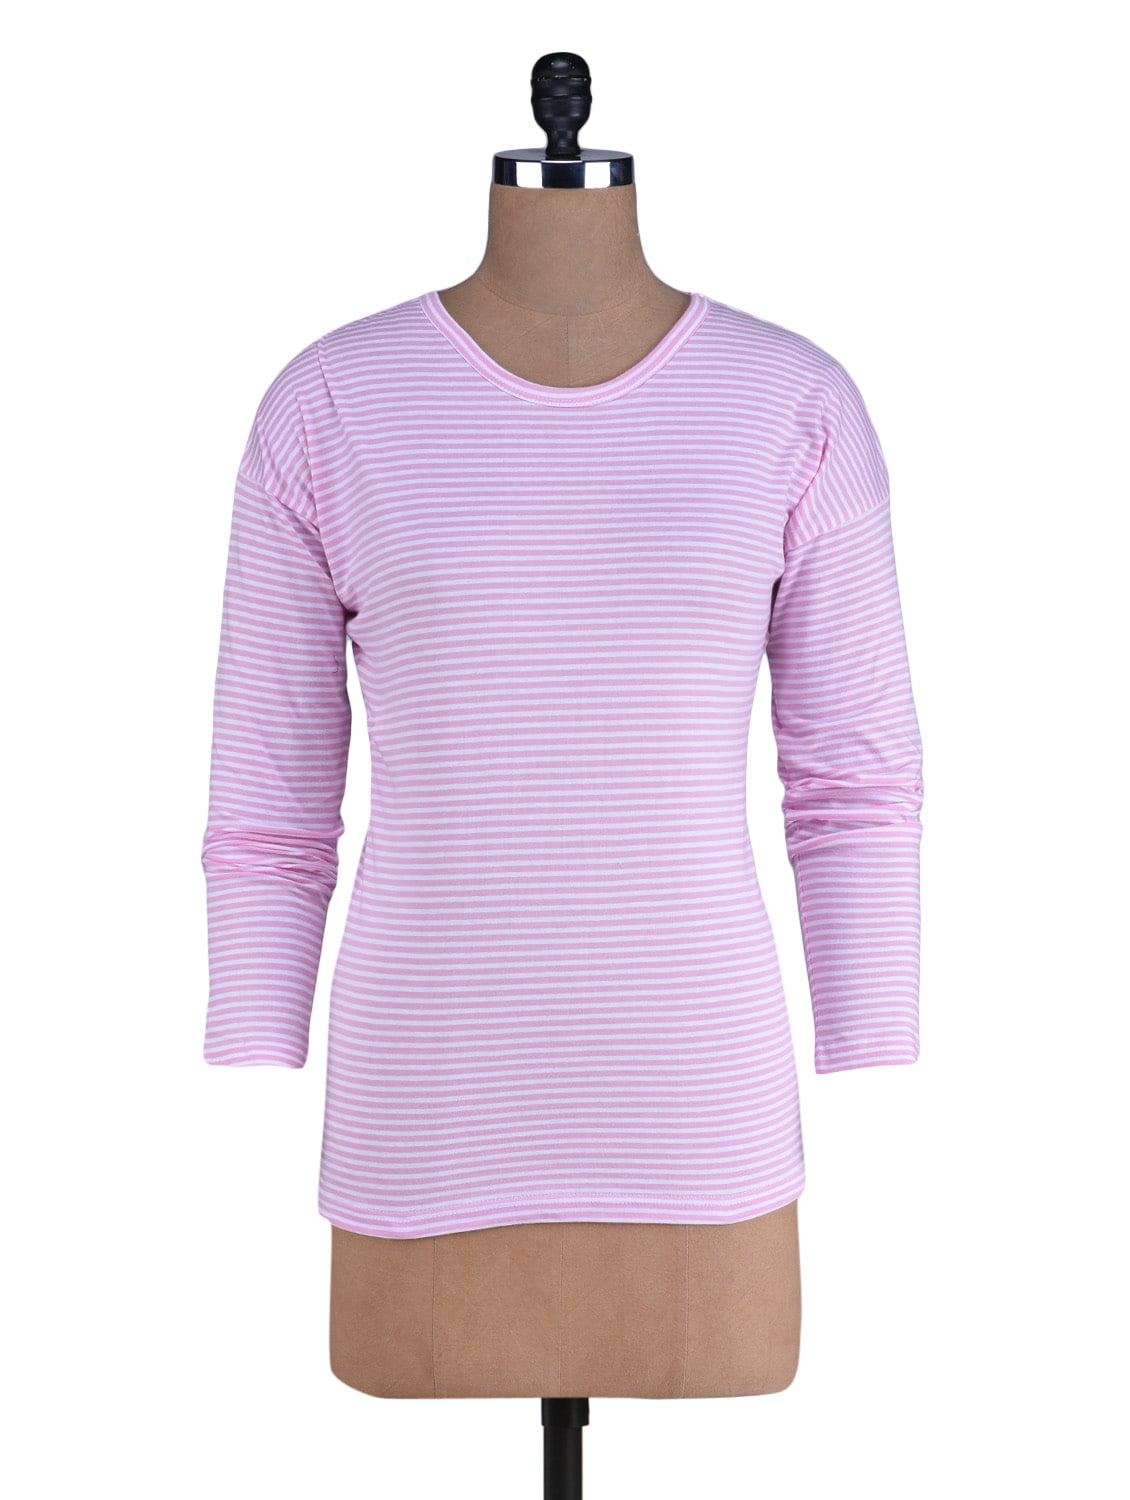 Baby Pink Striped Knitted Cotton T-Shirt - By